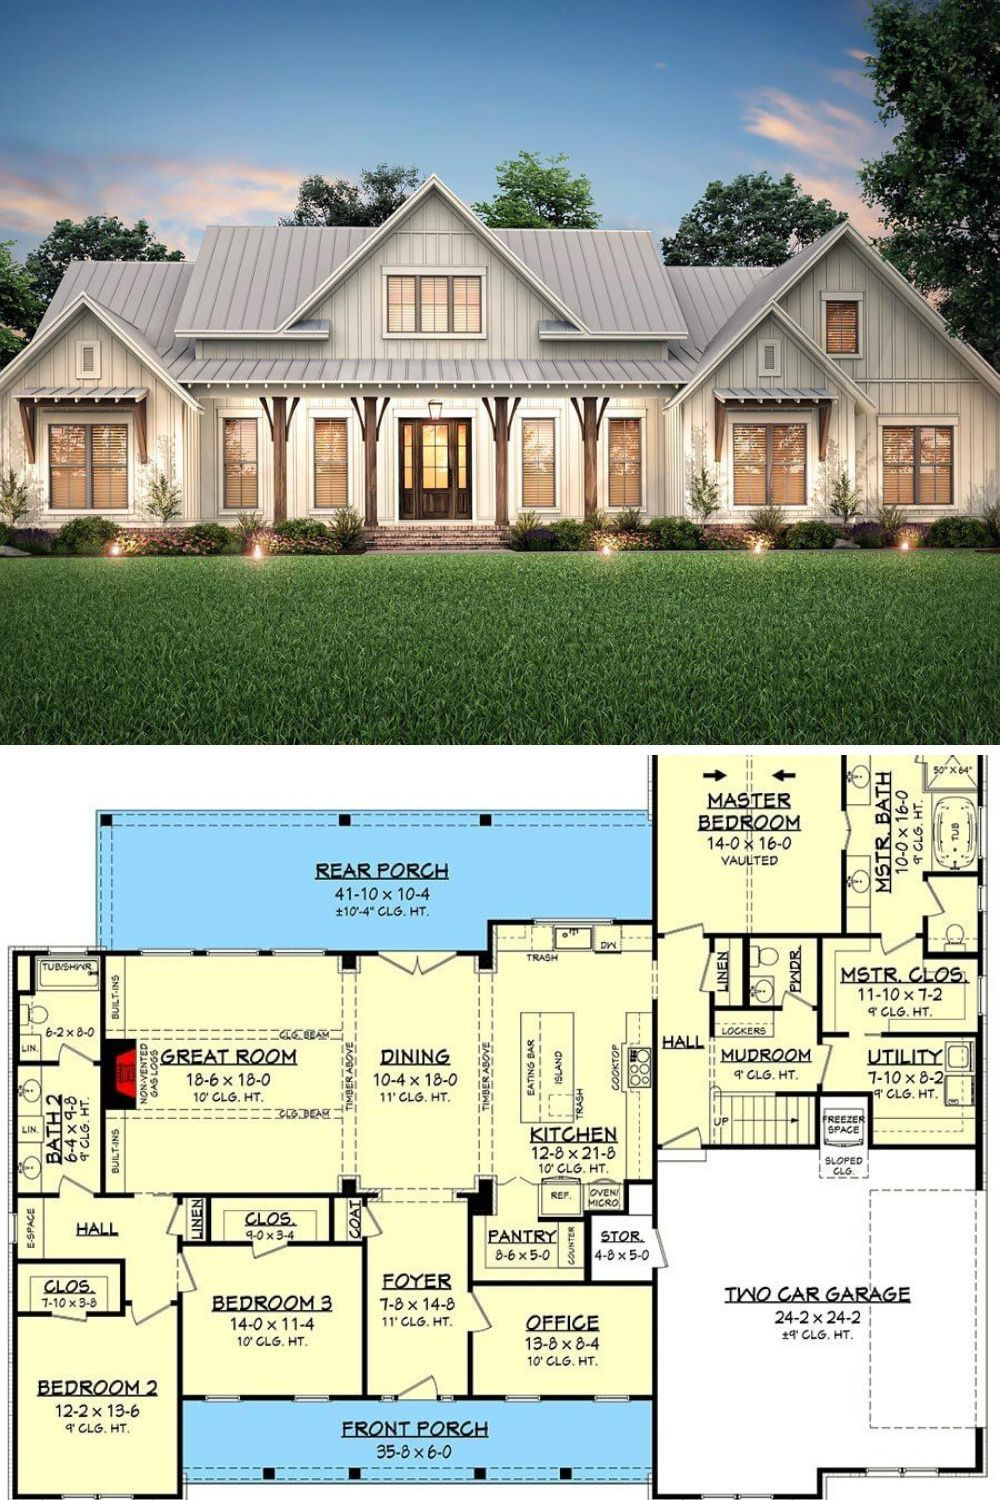 44+ Traditional farmhouse plans ideas in 2021